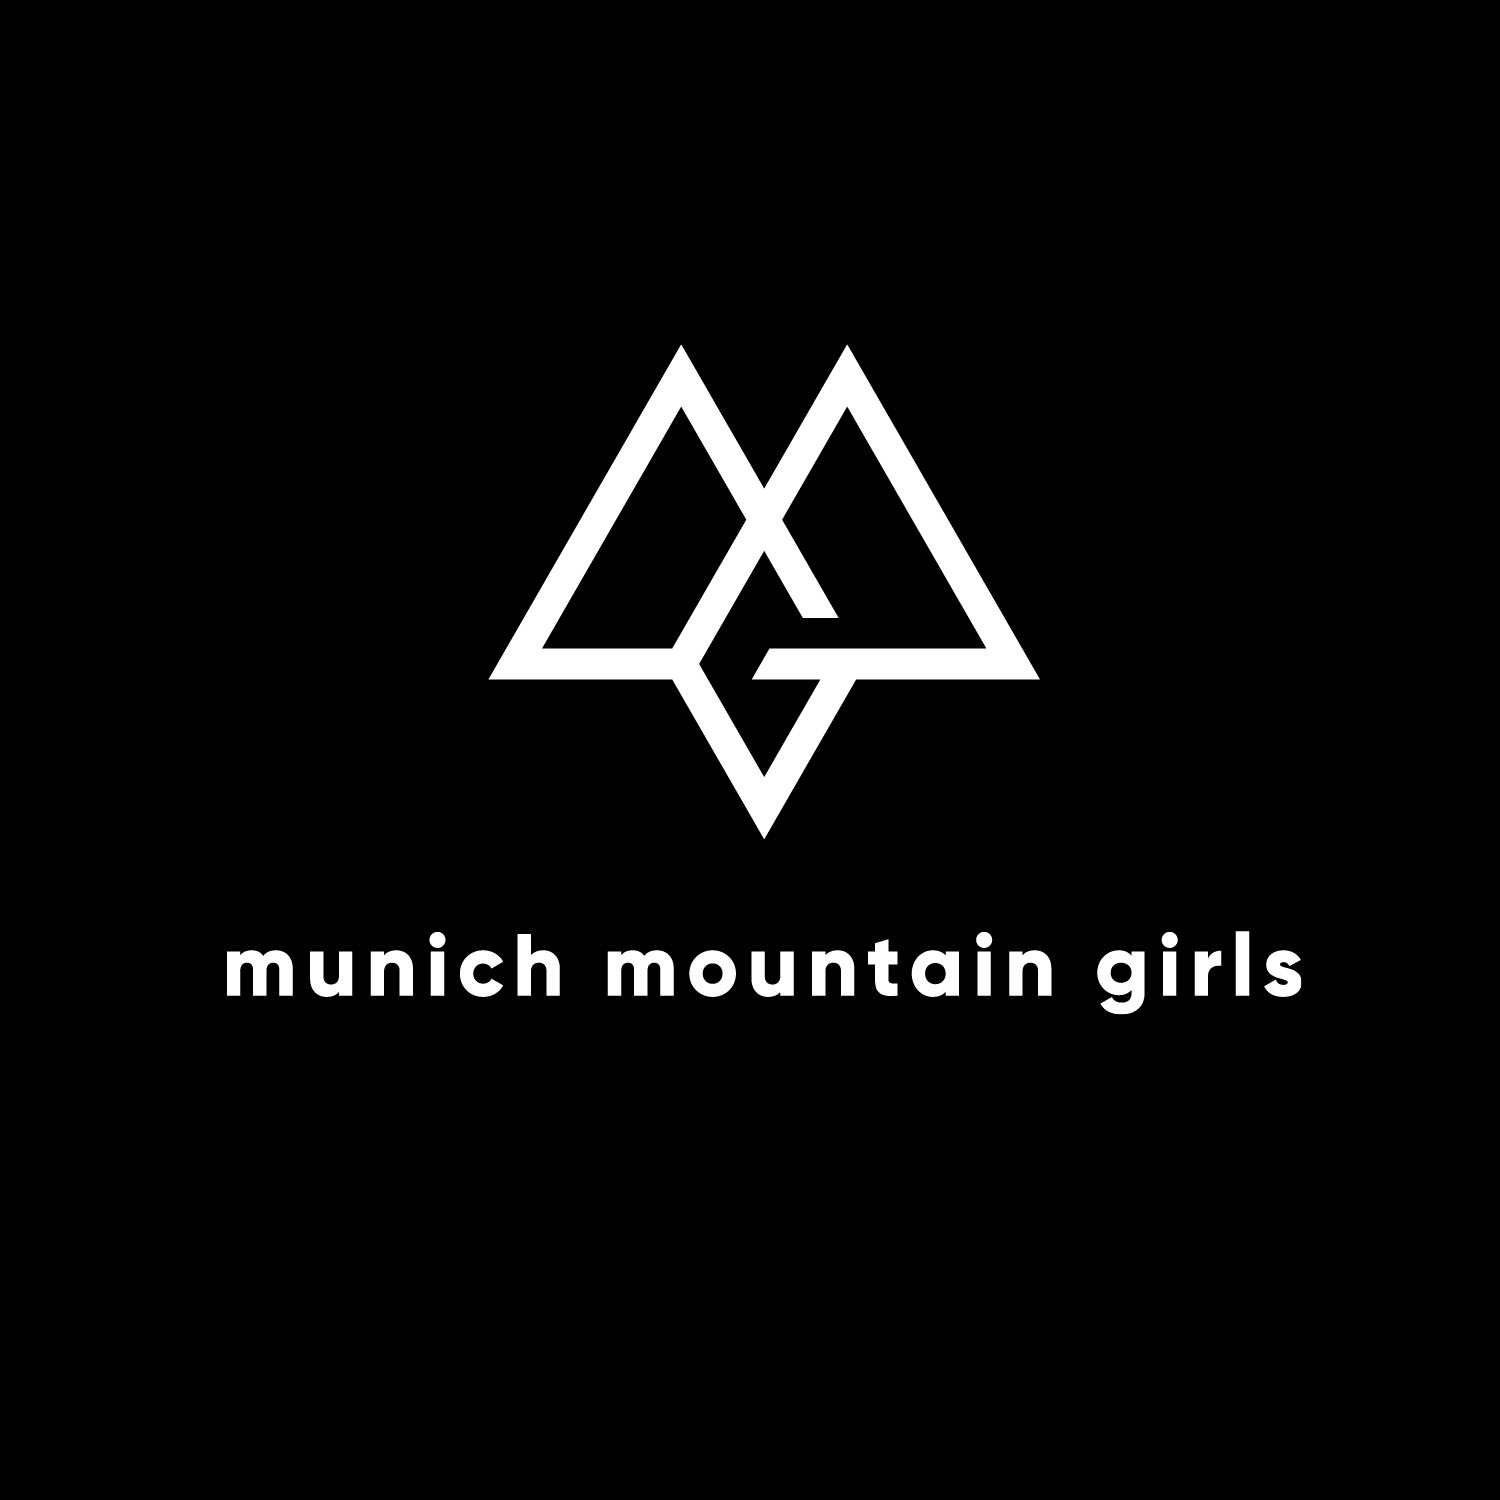 mountain black girls personals Find information about the mountain girl cannabis strain including reviews from other users, its most common effects, where to find it, and more.